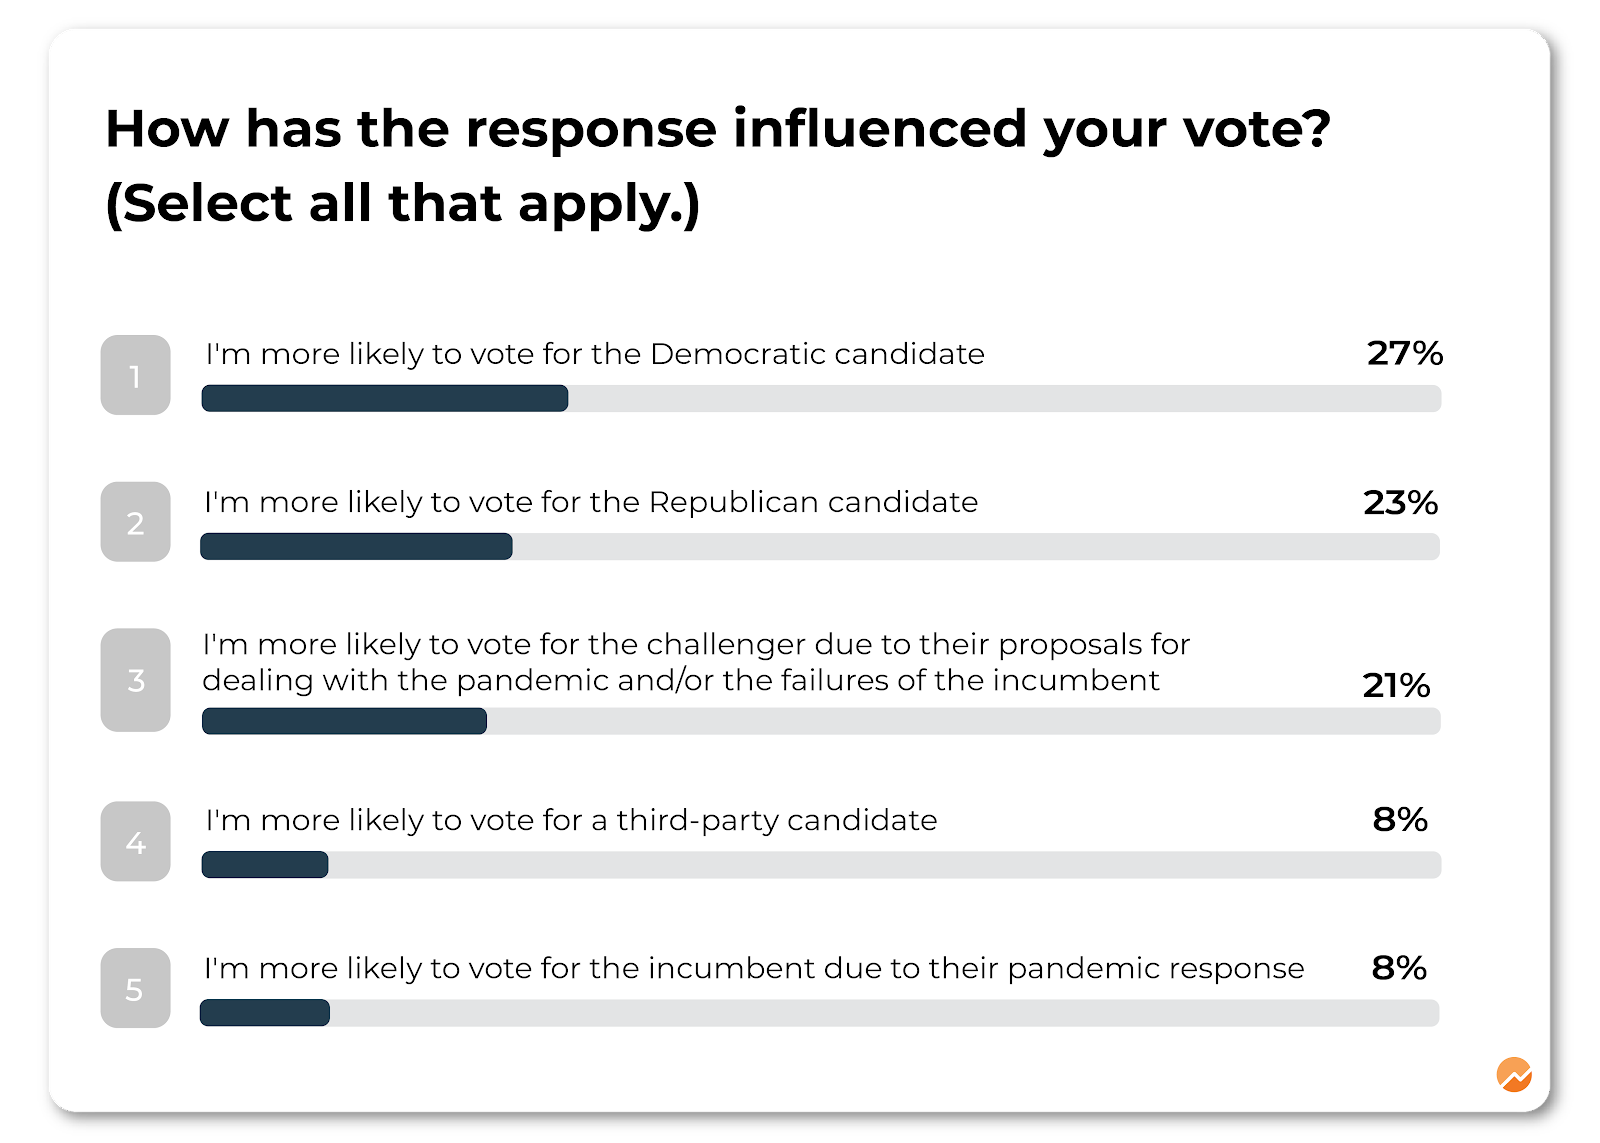 Small Business Owners Lean Toward Democratic, Challenger Candidates Due to Pandemic Response: Survey